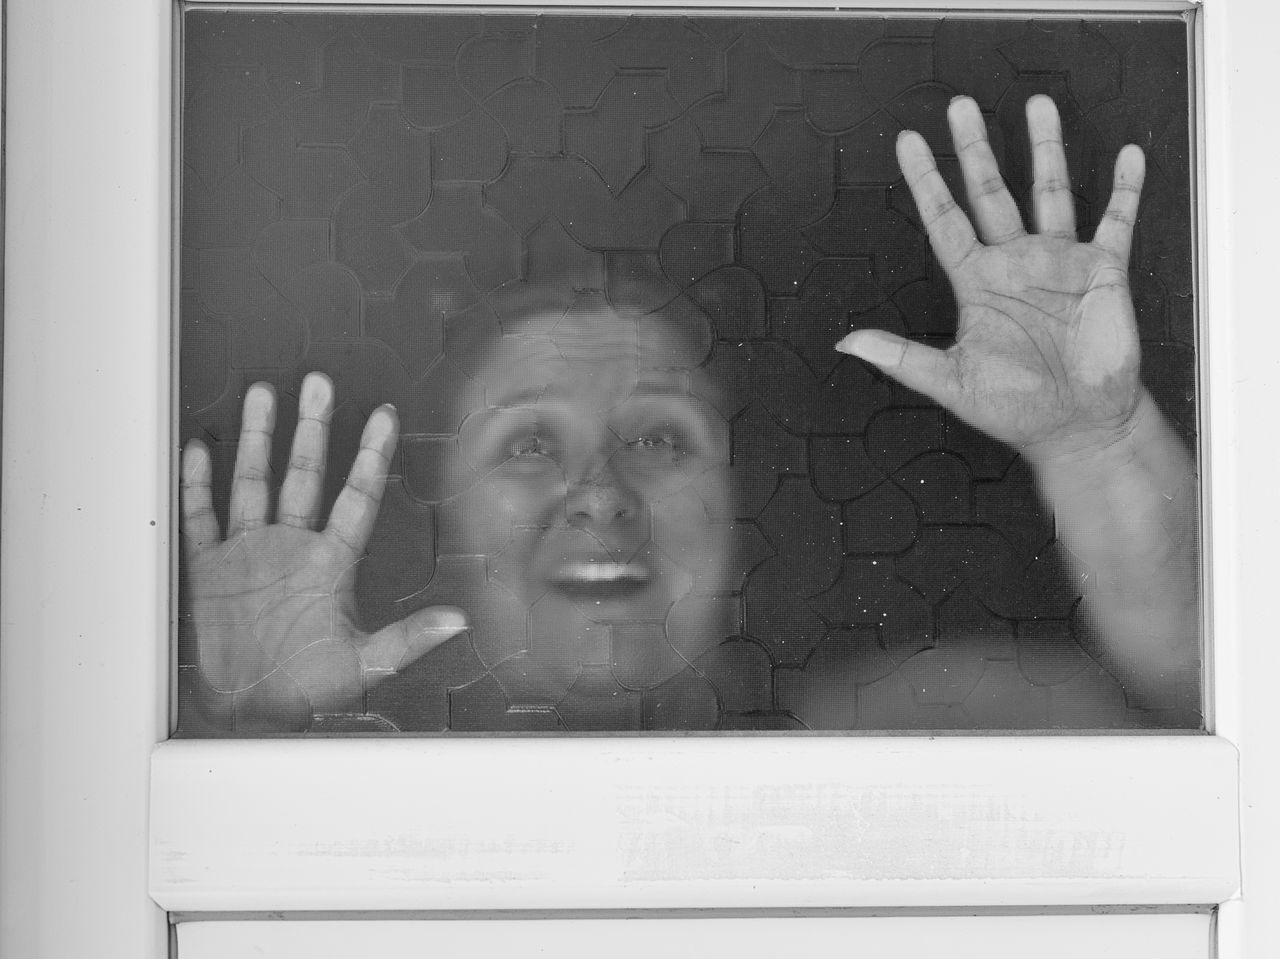 Help Me Alarmed Caged In Fear Gesturing Glass Reflection Horror Movies Horror Stricken Human Body Part Human Finger Human Hand Locked In Locked Up Nightmare One Person Palm Panic Panicky Scared Face Shock Terrified Terror Struck Trapped